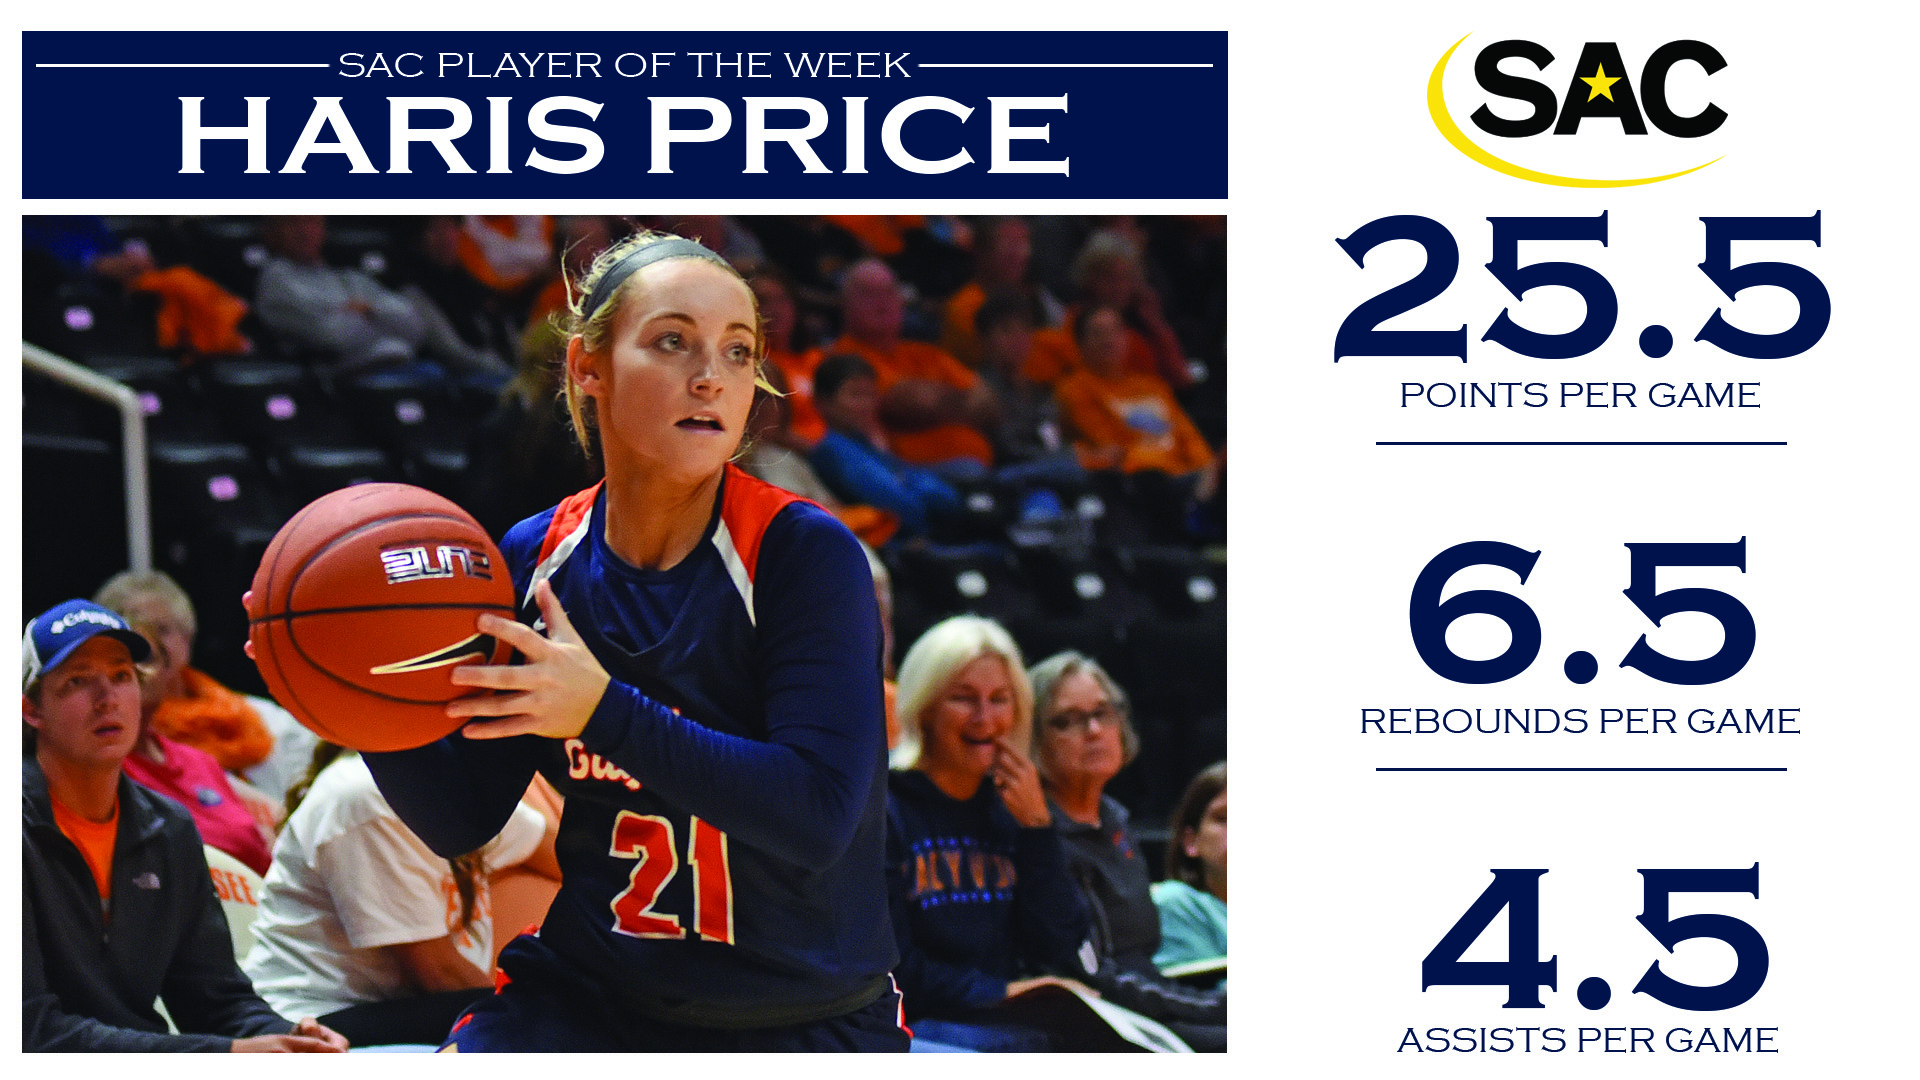 Price goes back-to-back as SAC Player of the Week